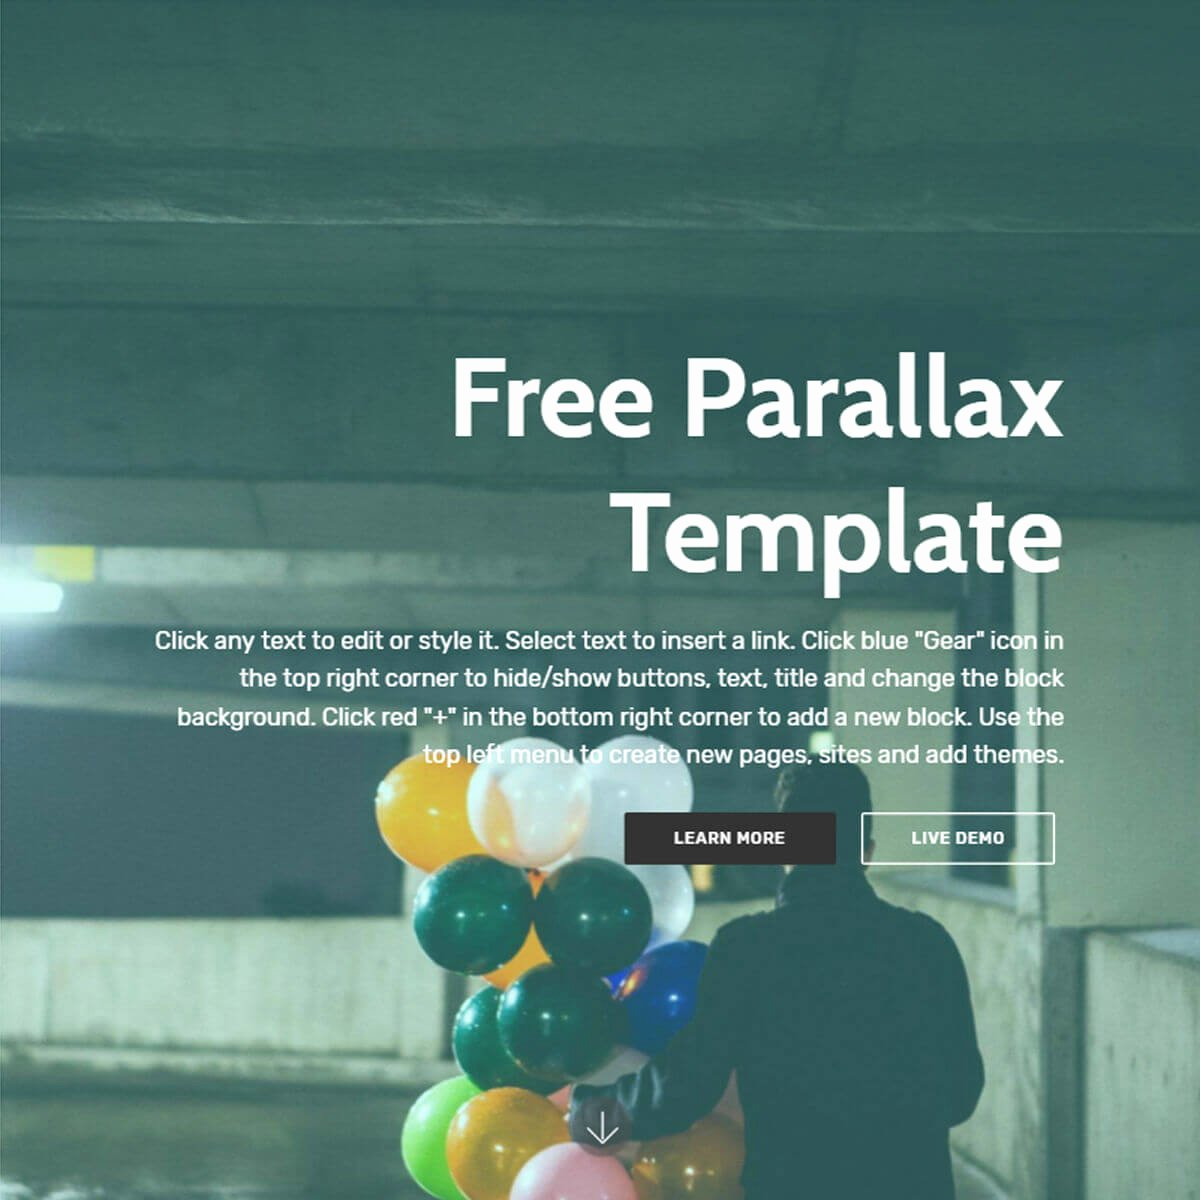 Free Parallax Website Template Elegant Free Bootstrap Template 2018